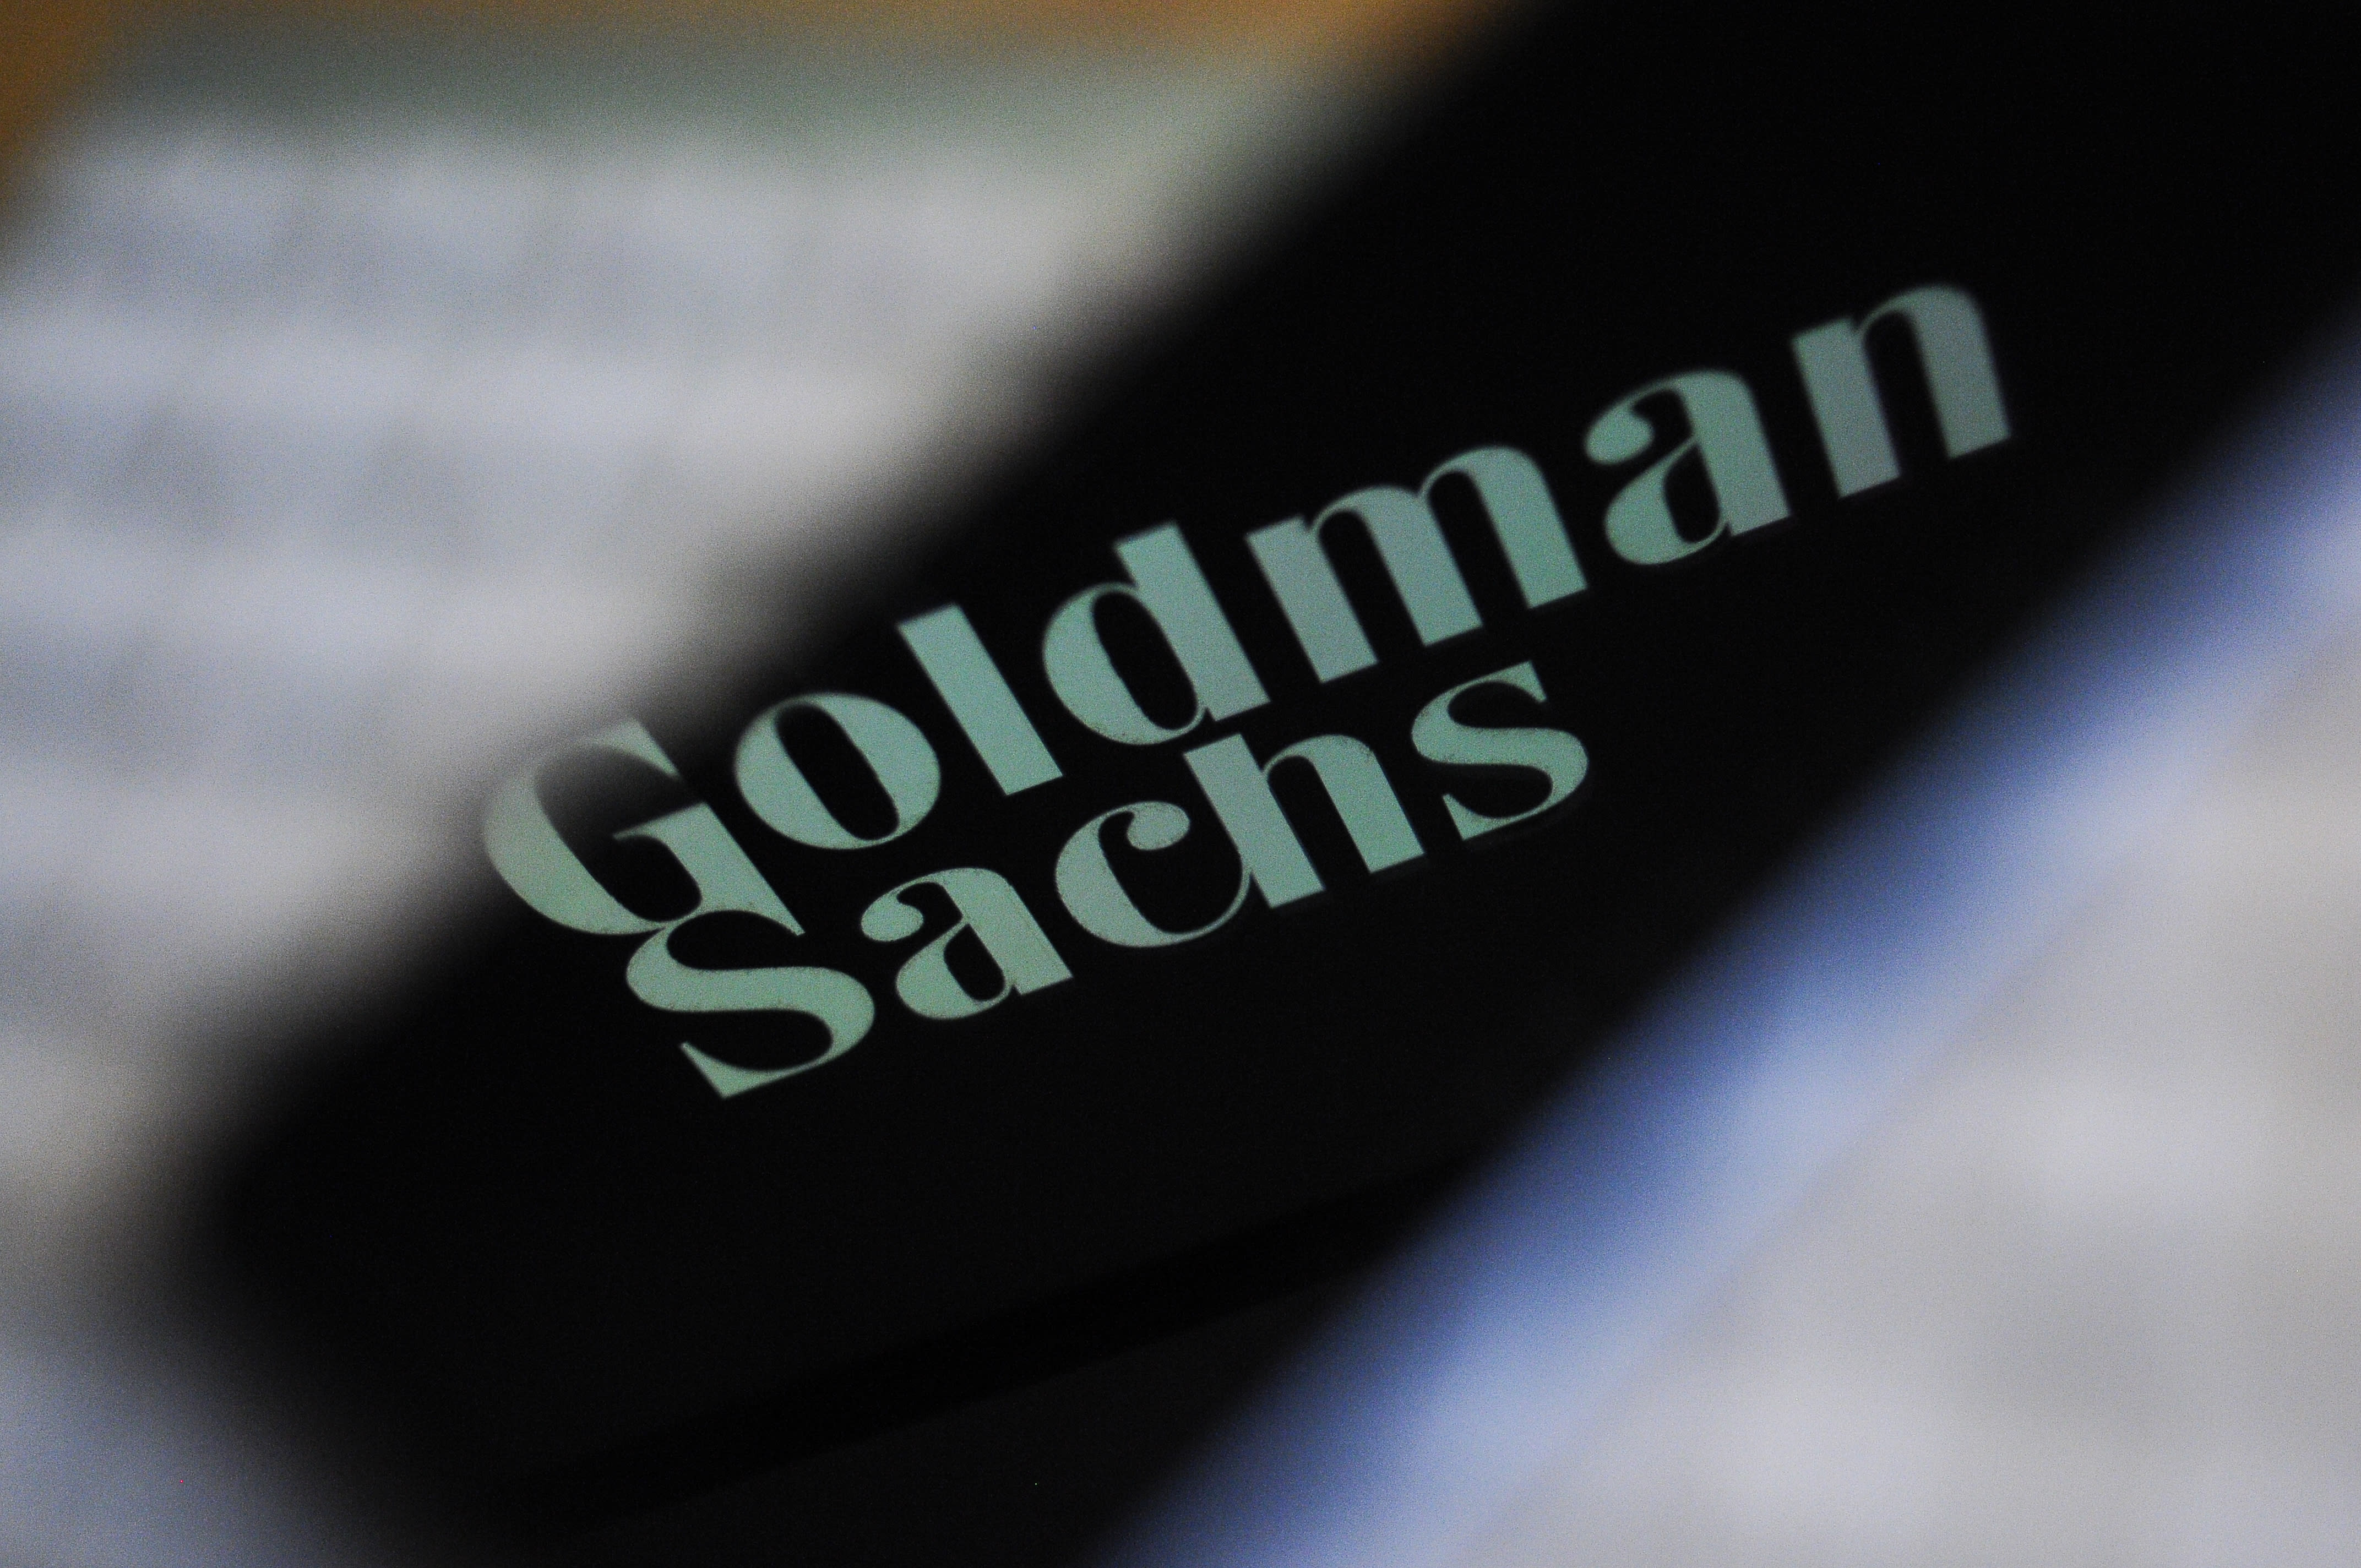 Goldman Sachs bets on women entrepreneurs through year-old investment program